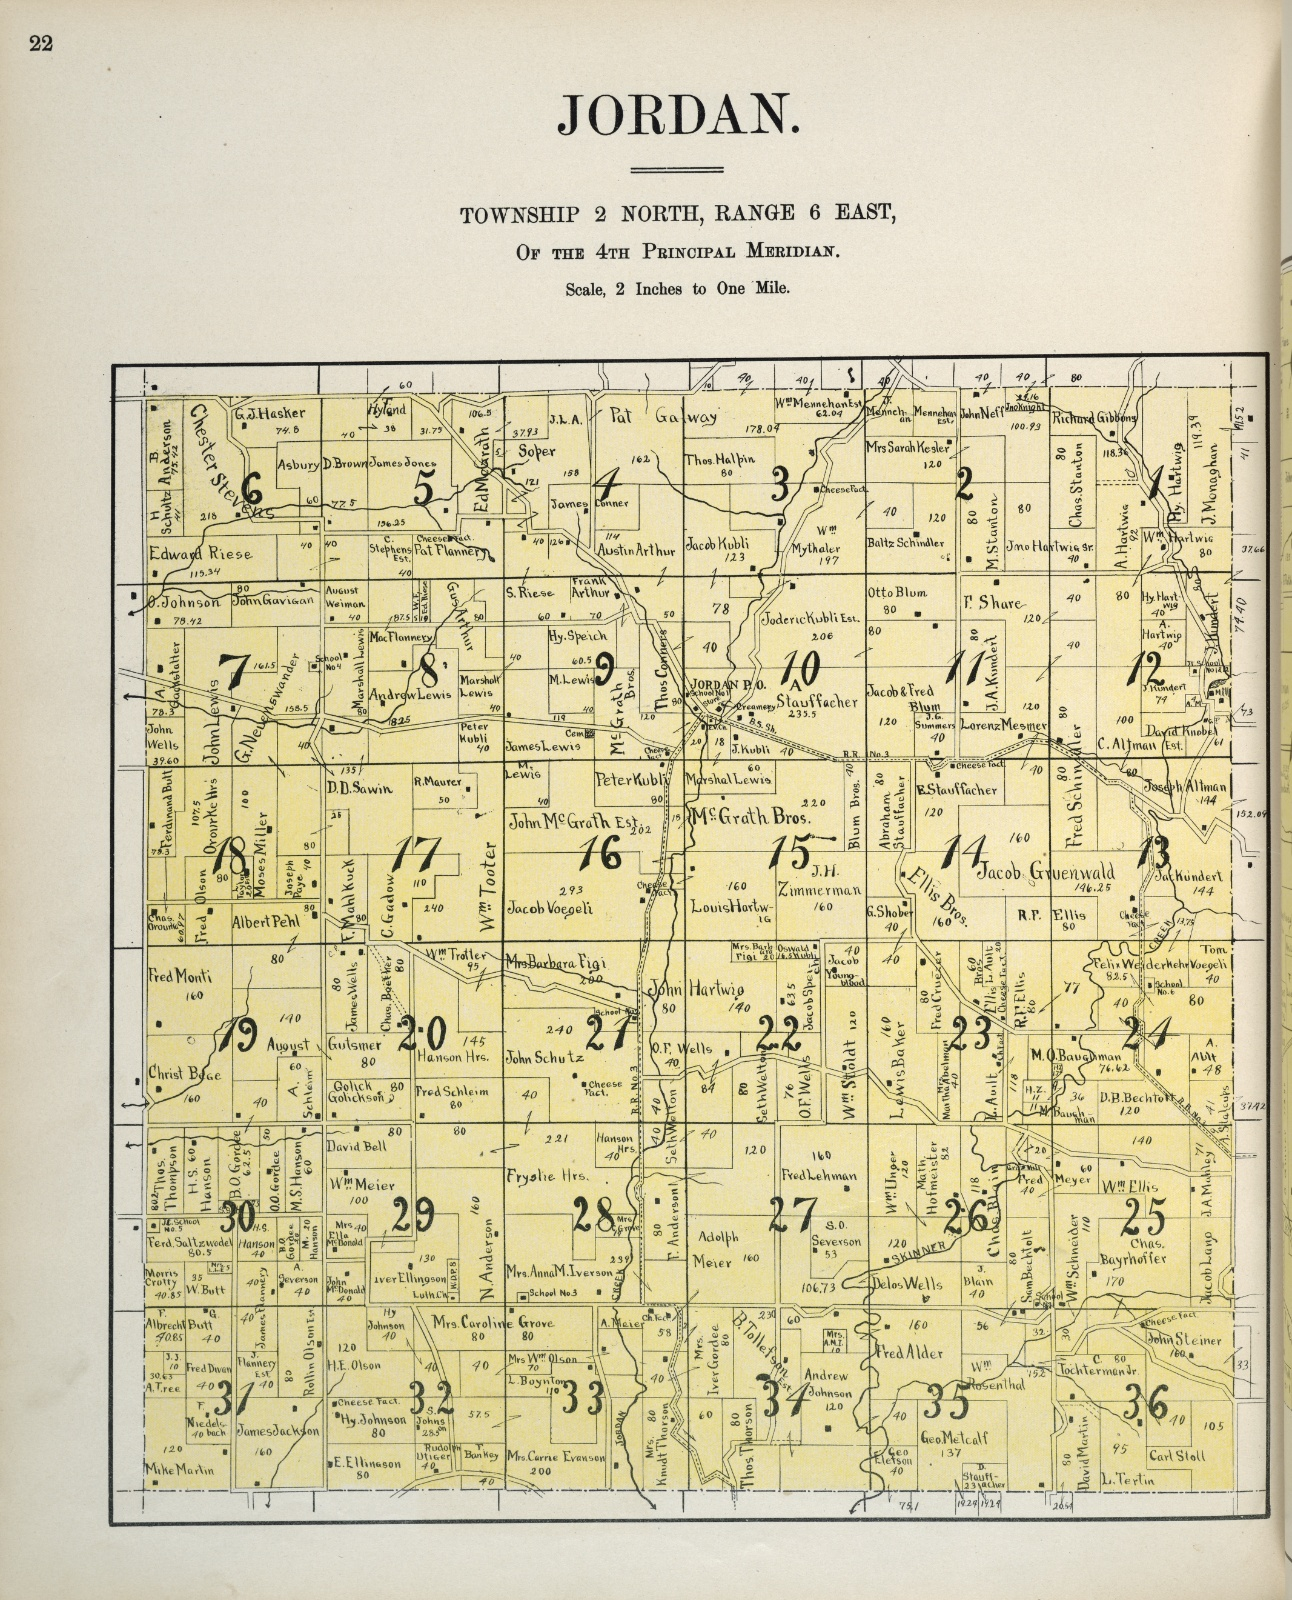 Plat-book-of-Green-County-Wisconsin-1902-p22